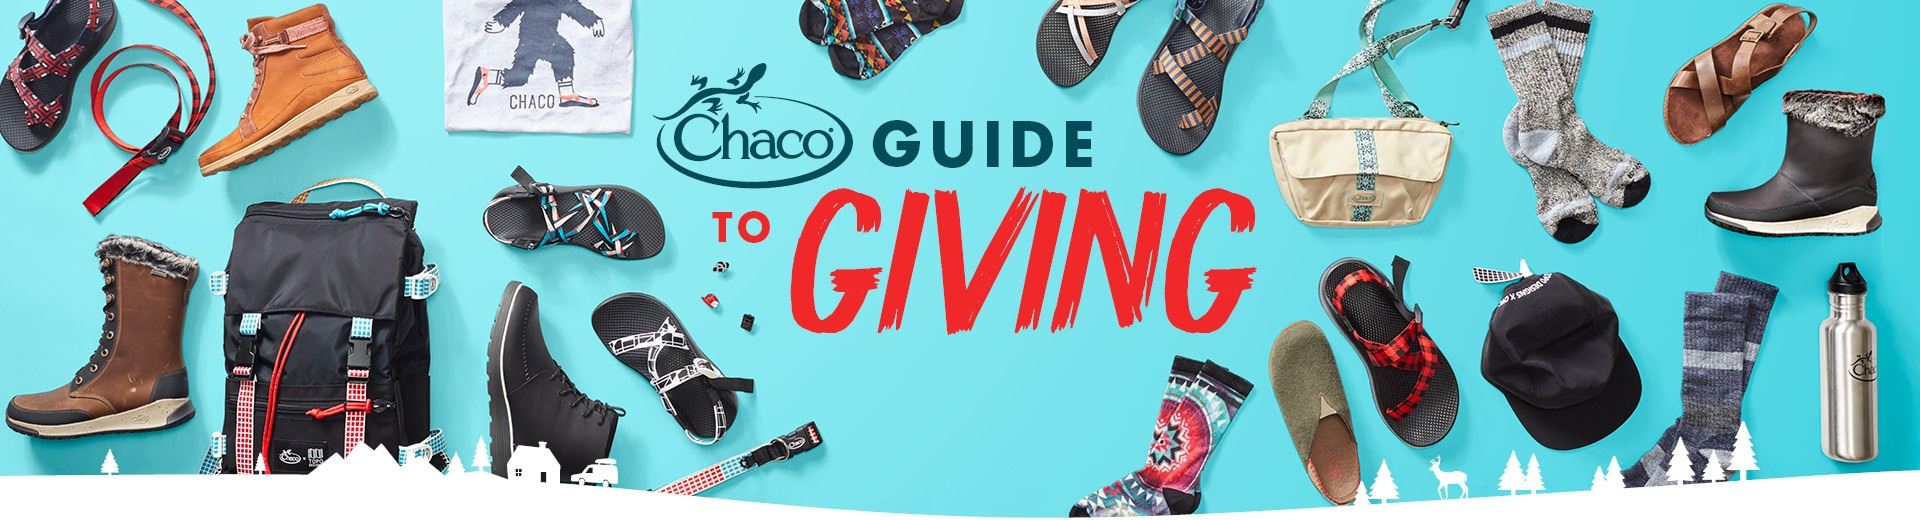 Chaco Guide to Giving